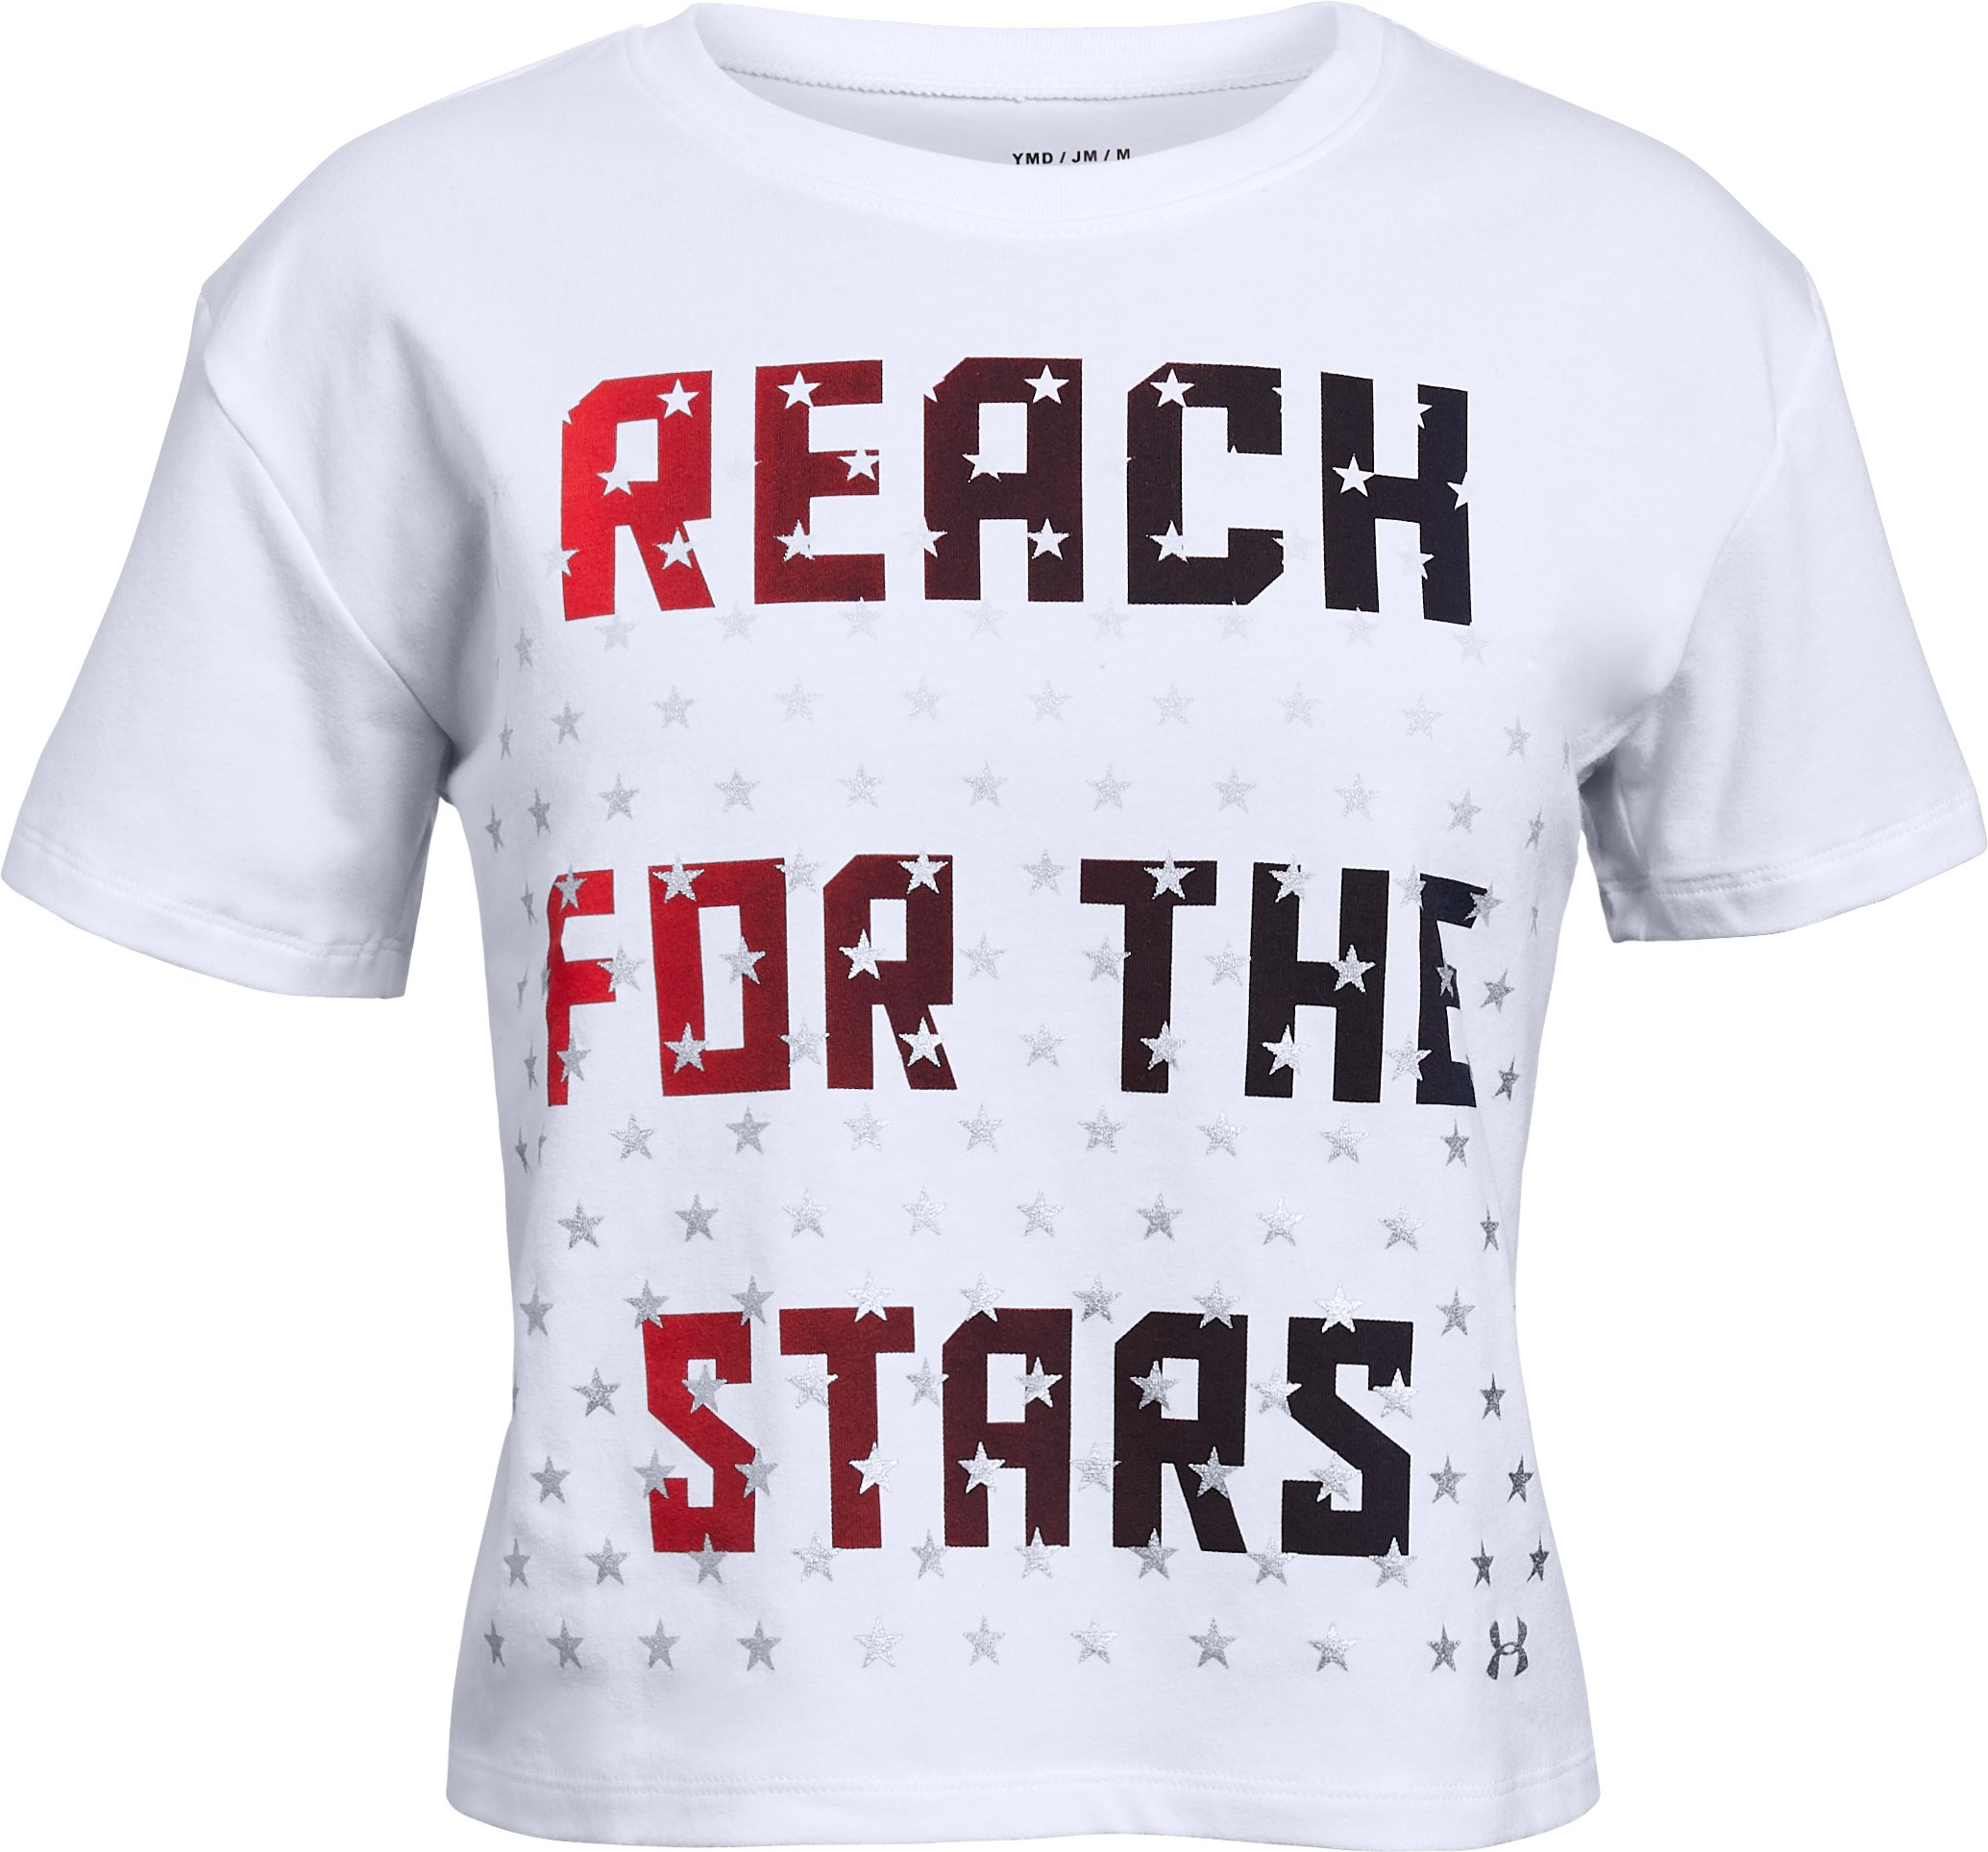 Girls' UA USA Reach Stars T-Shirt, White,